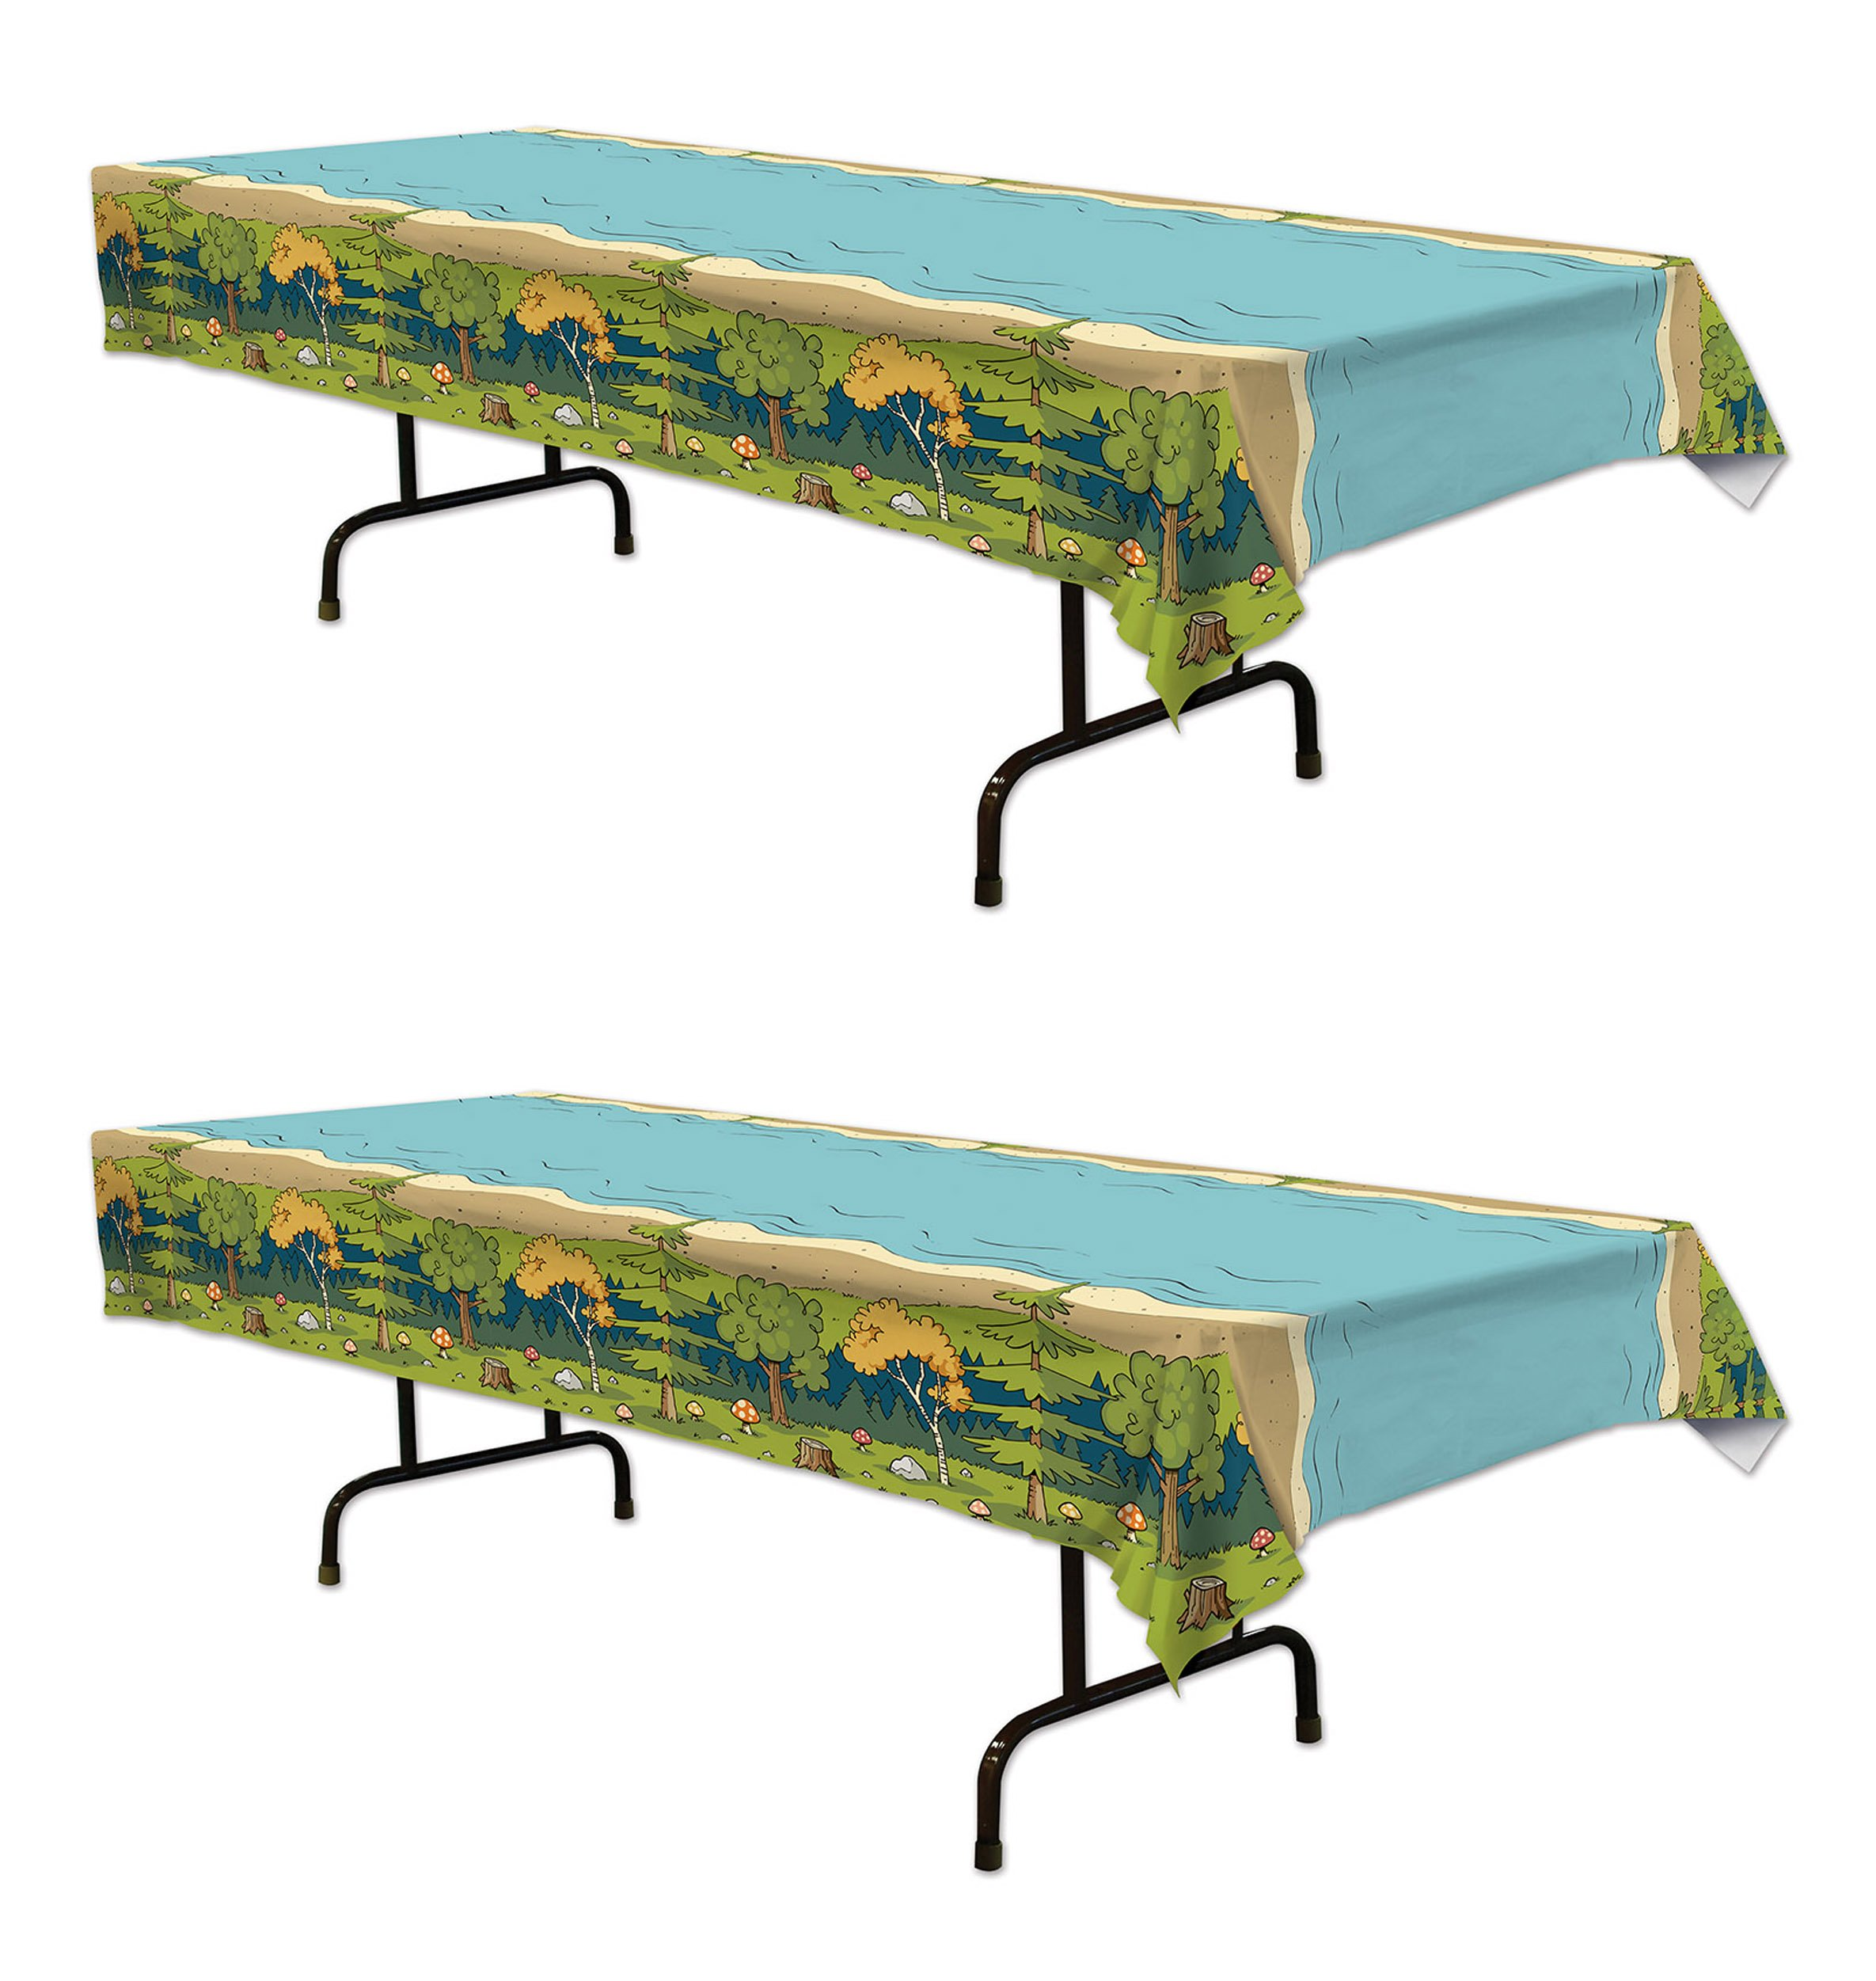 Beistle 59944 2 Piece Woodland Friends Table Covers, 54'' x 108'', Multicolor